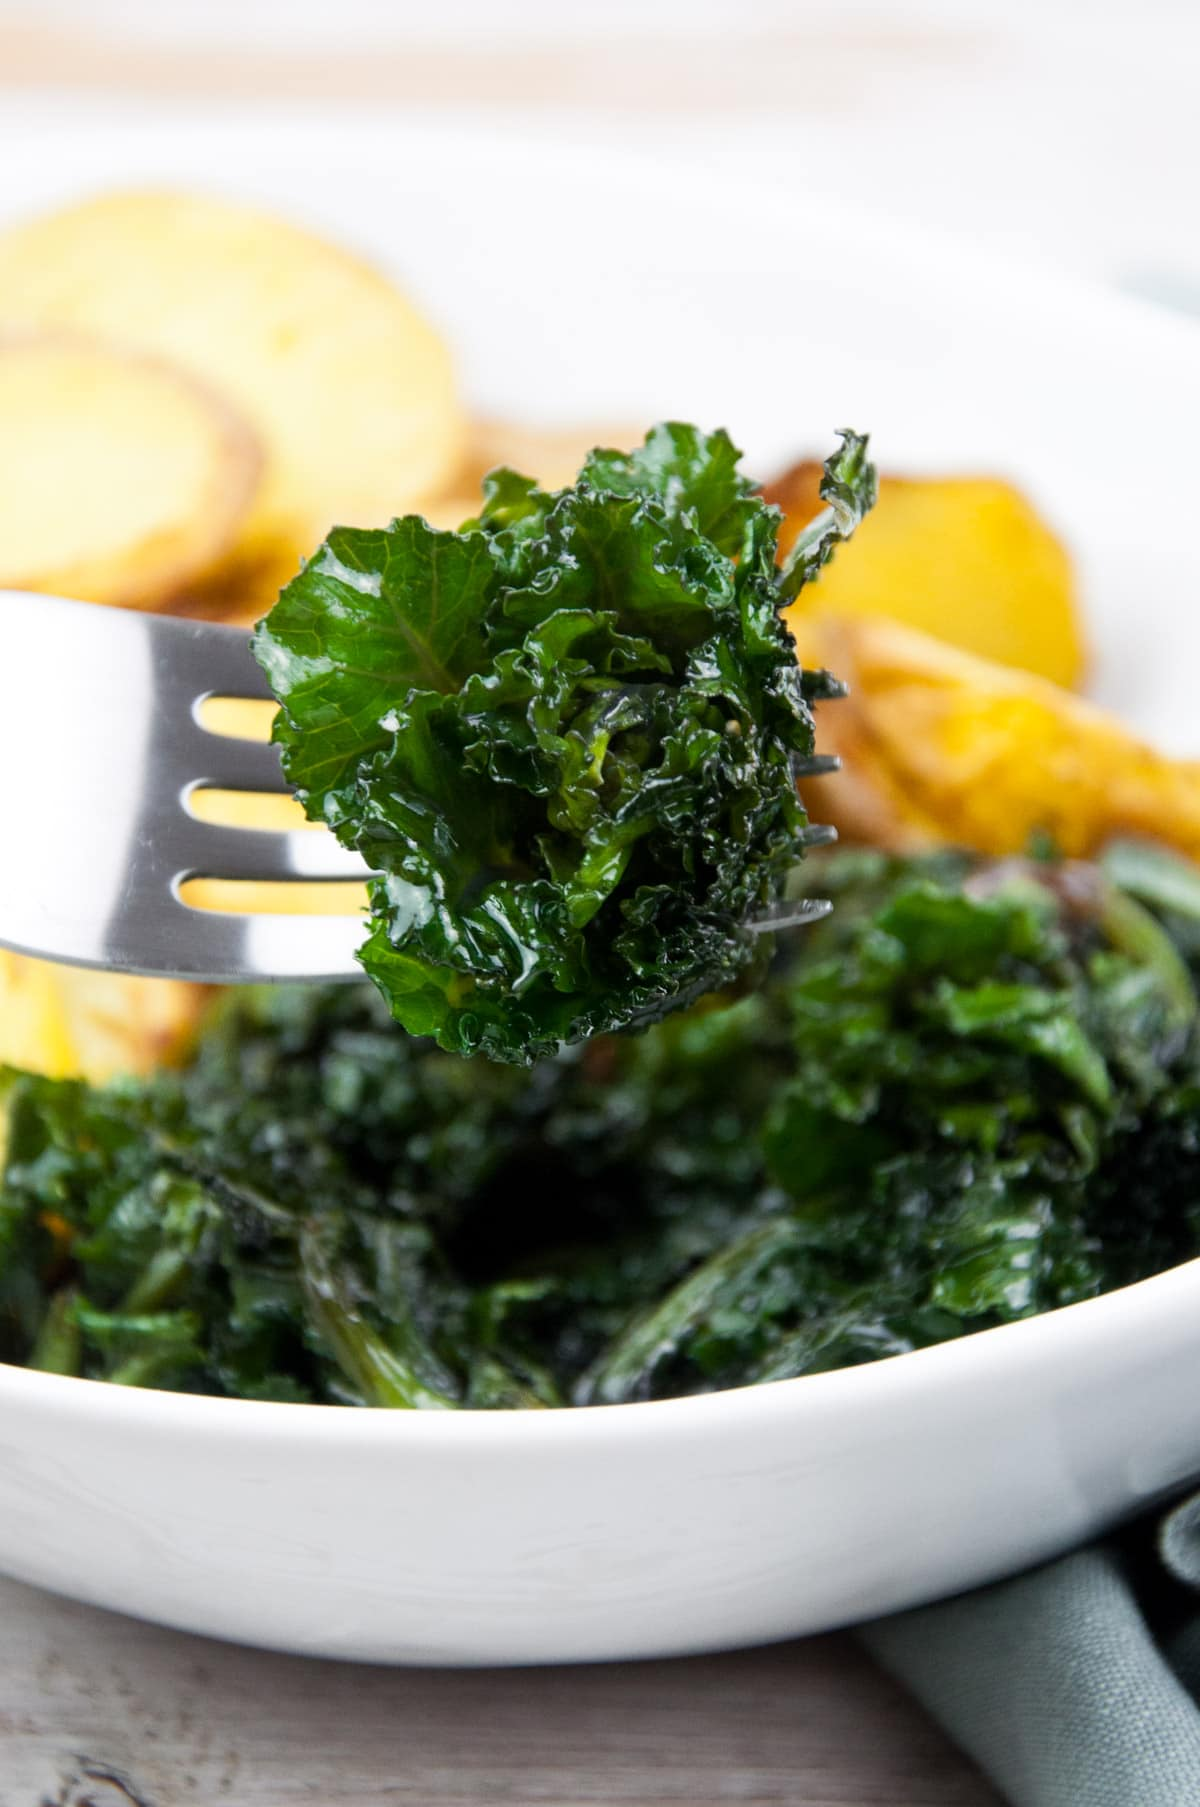 Kalettes - Flower Sprouts